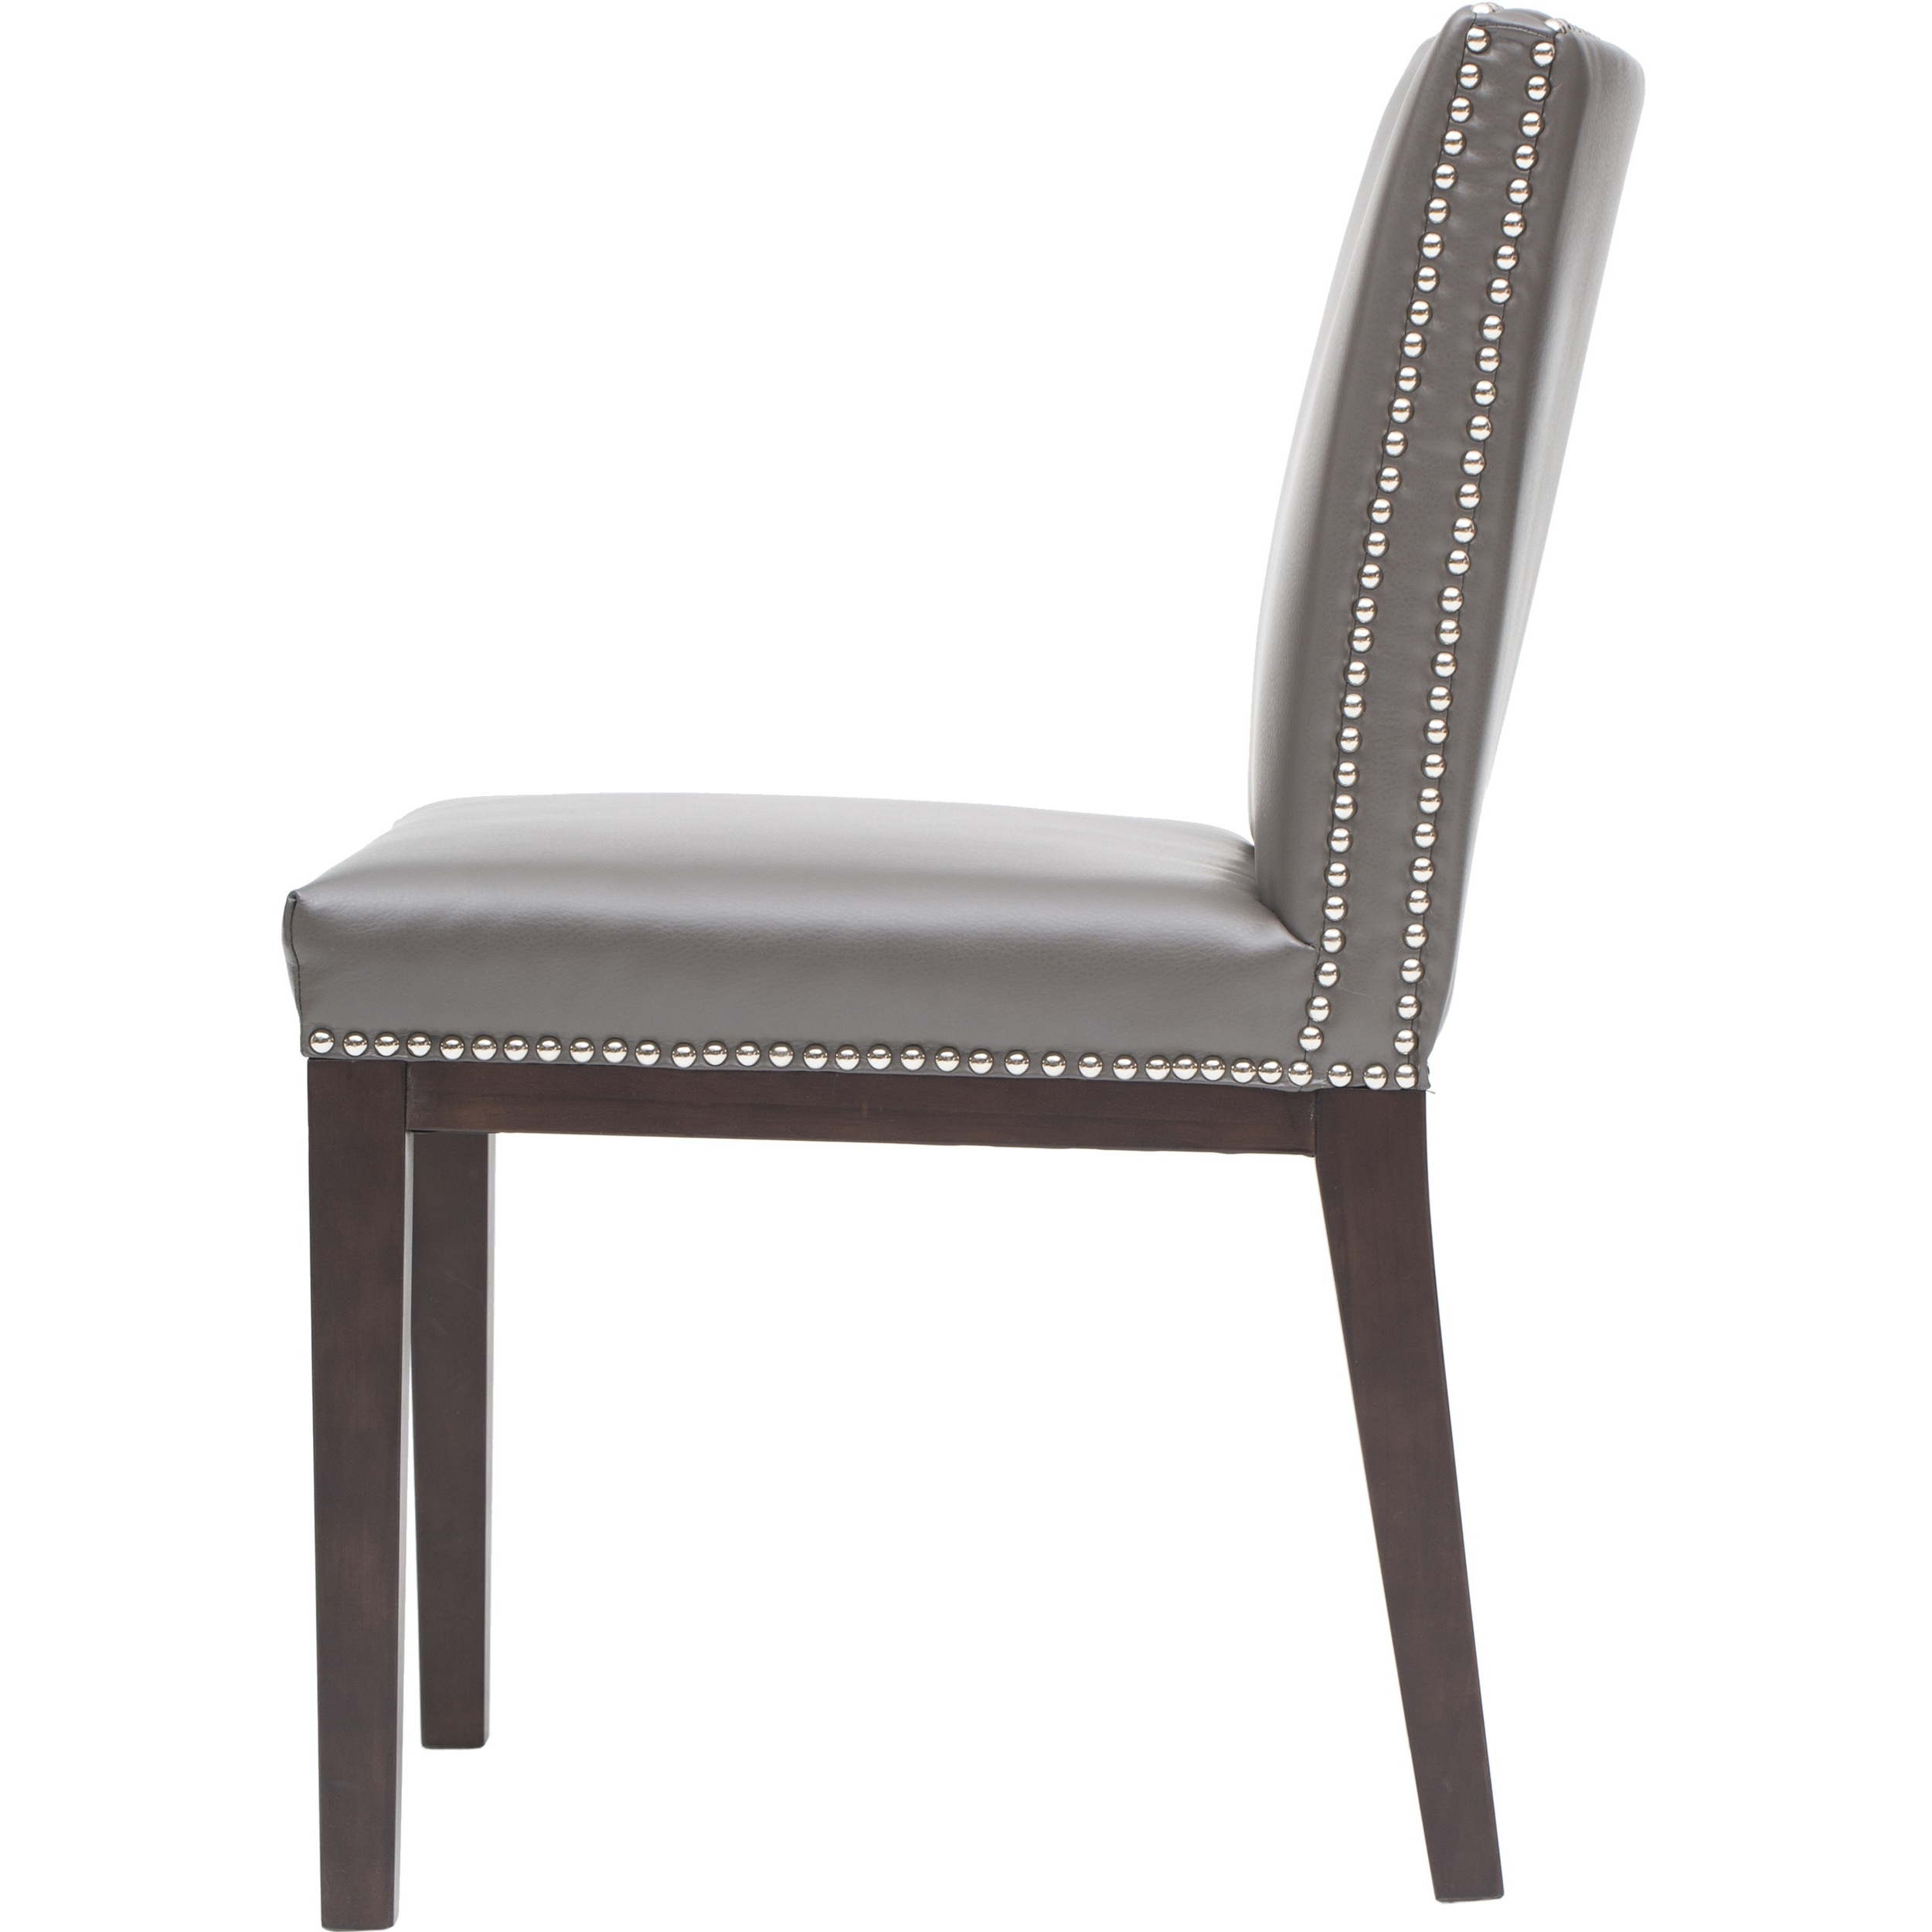 Preferred High Back Leather Dining Chairs Inside Modest Elegancy Of A Gray Leather Dining Chair (View 20 of 25)